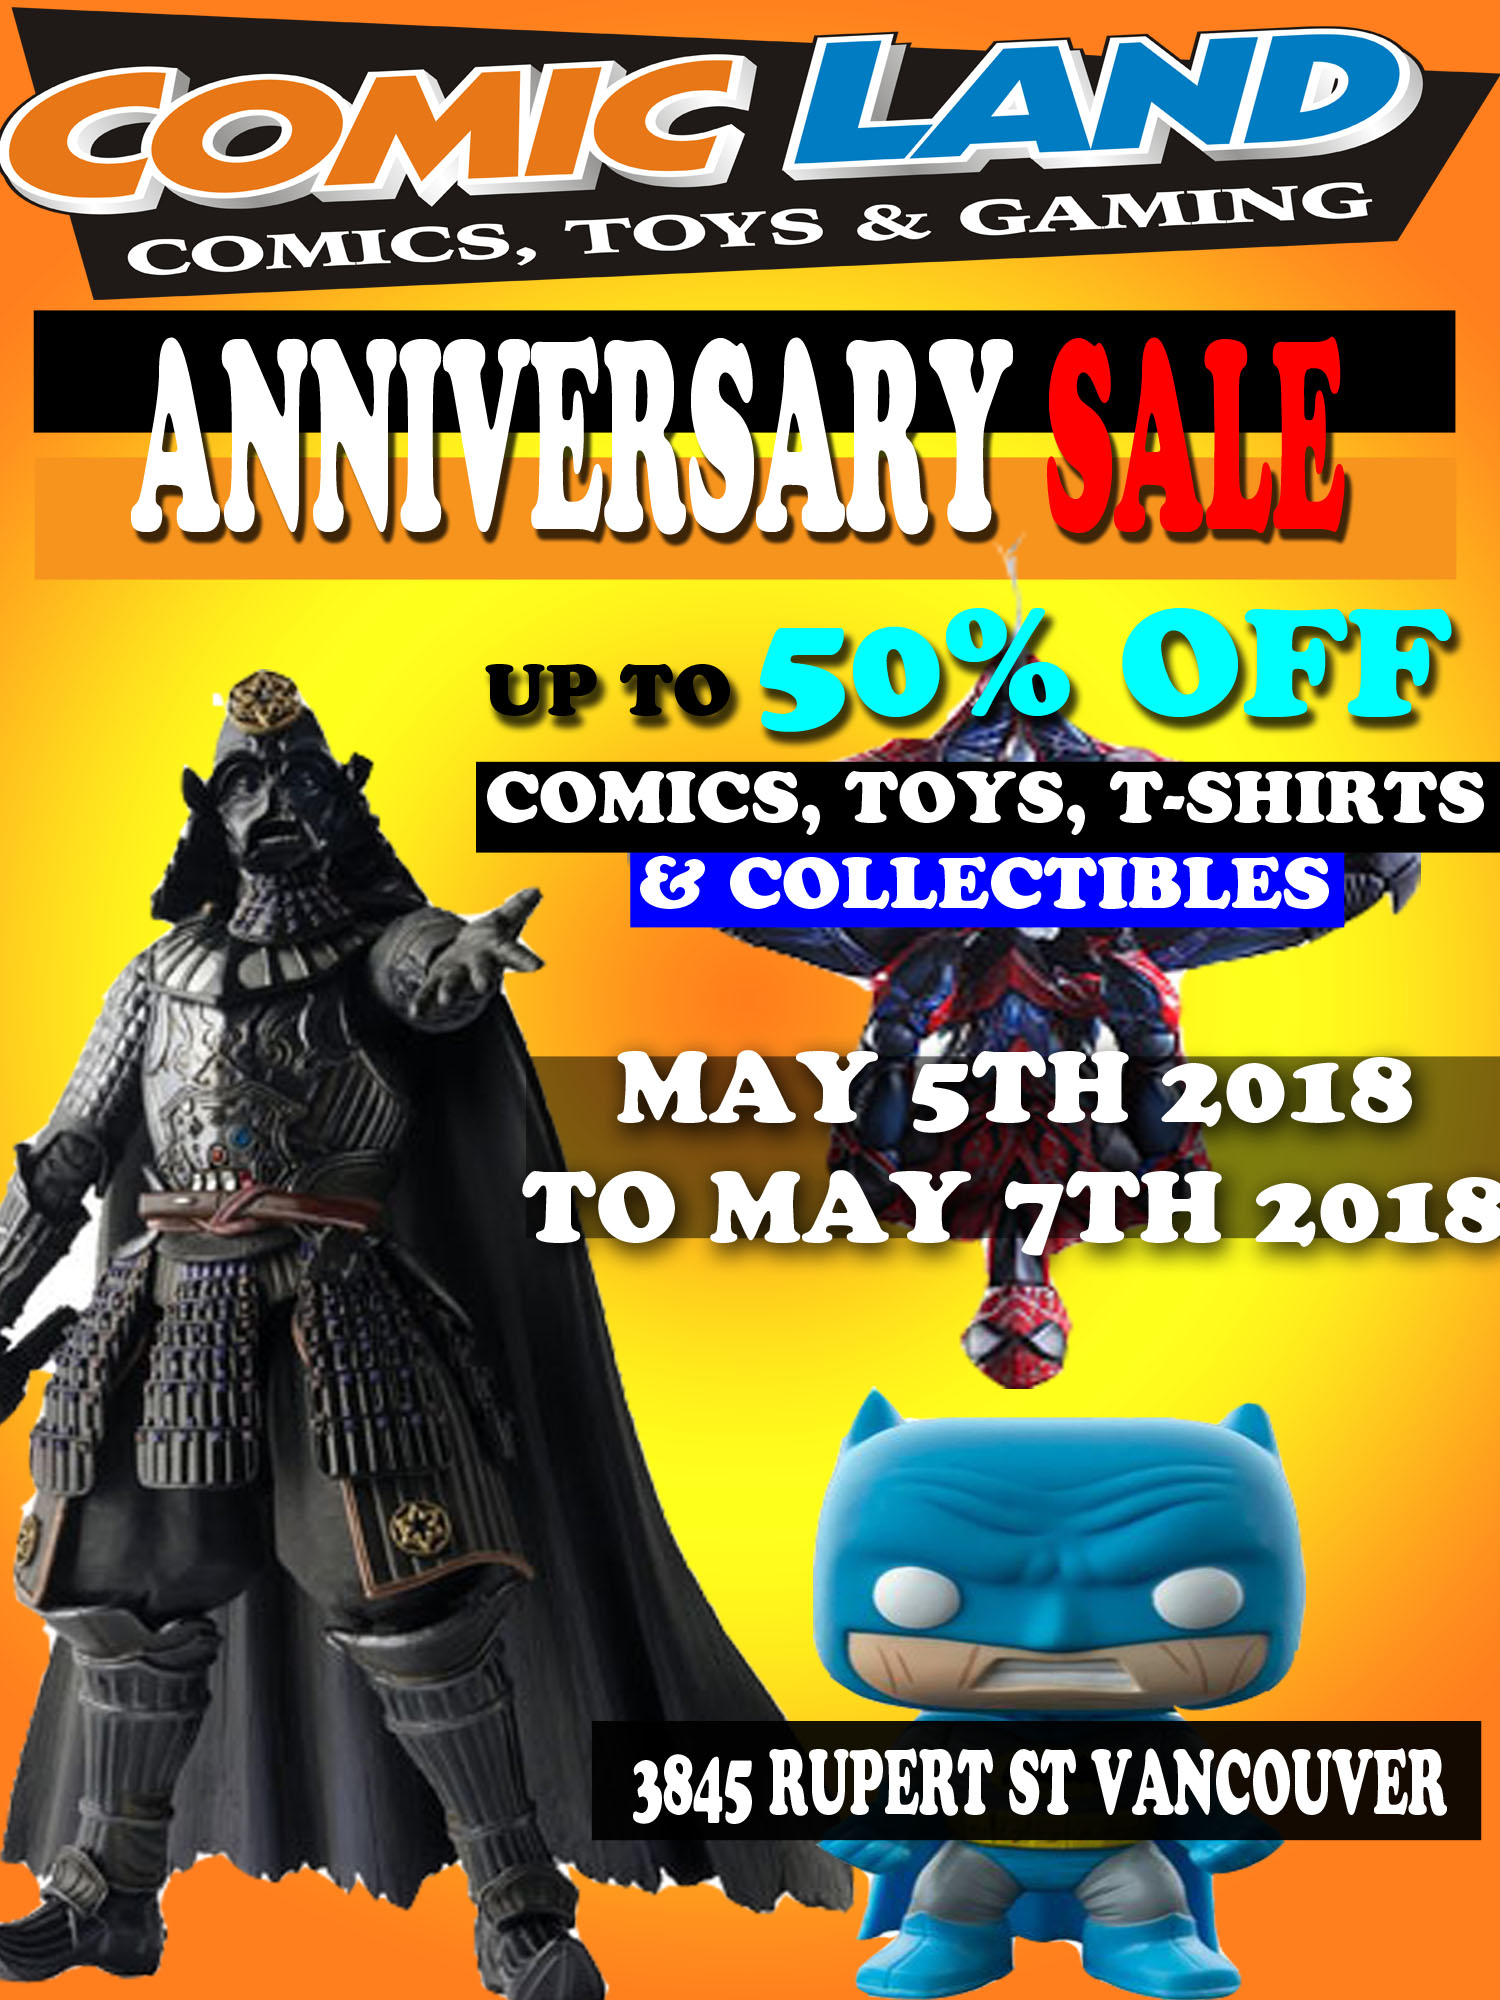 Comic Land Anniversary Sale May 5th to May 7th 2018 - Free Comic Book Day 2018 May 5th 2018